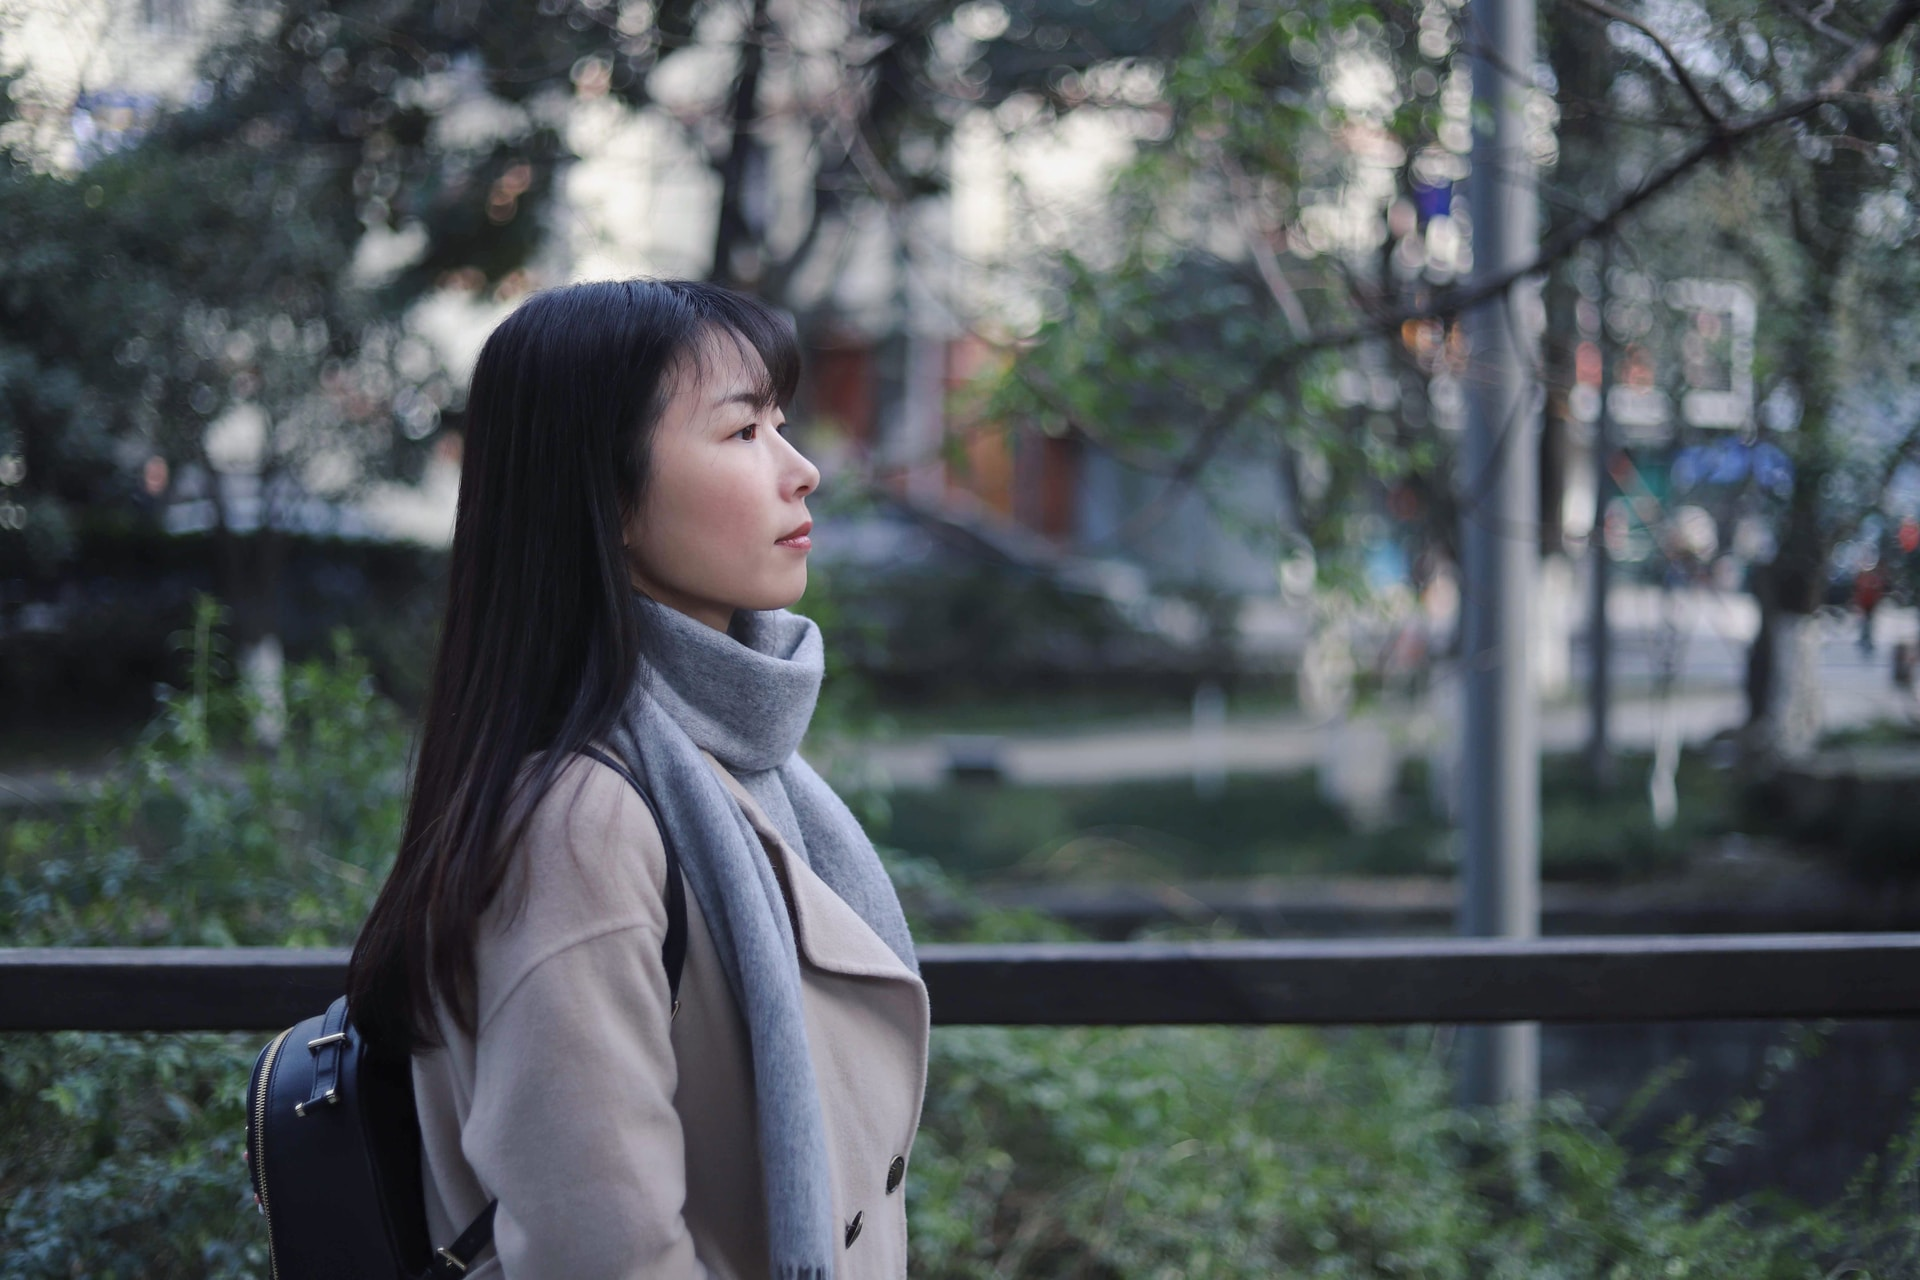 woman in gray scarf and coat standing near bridge